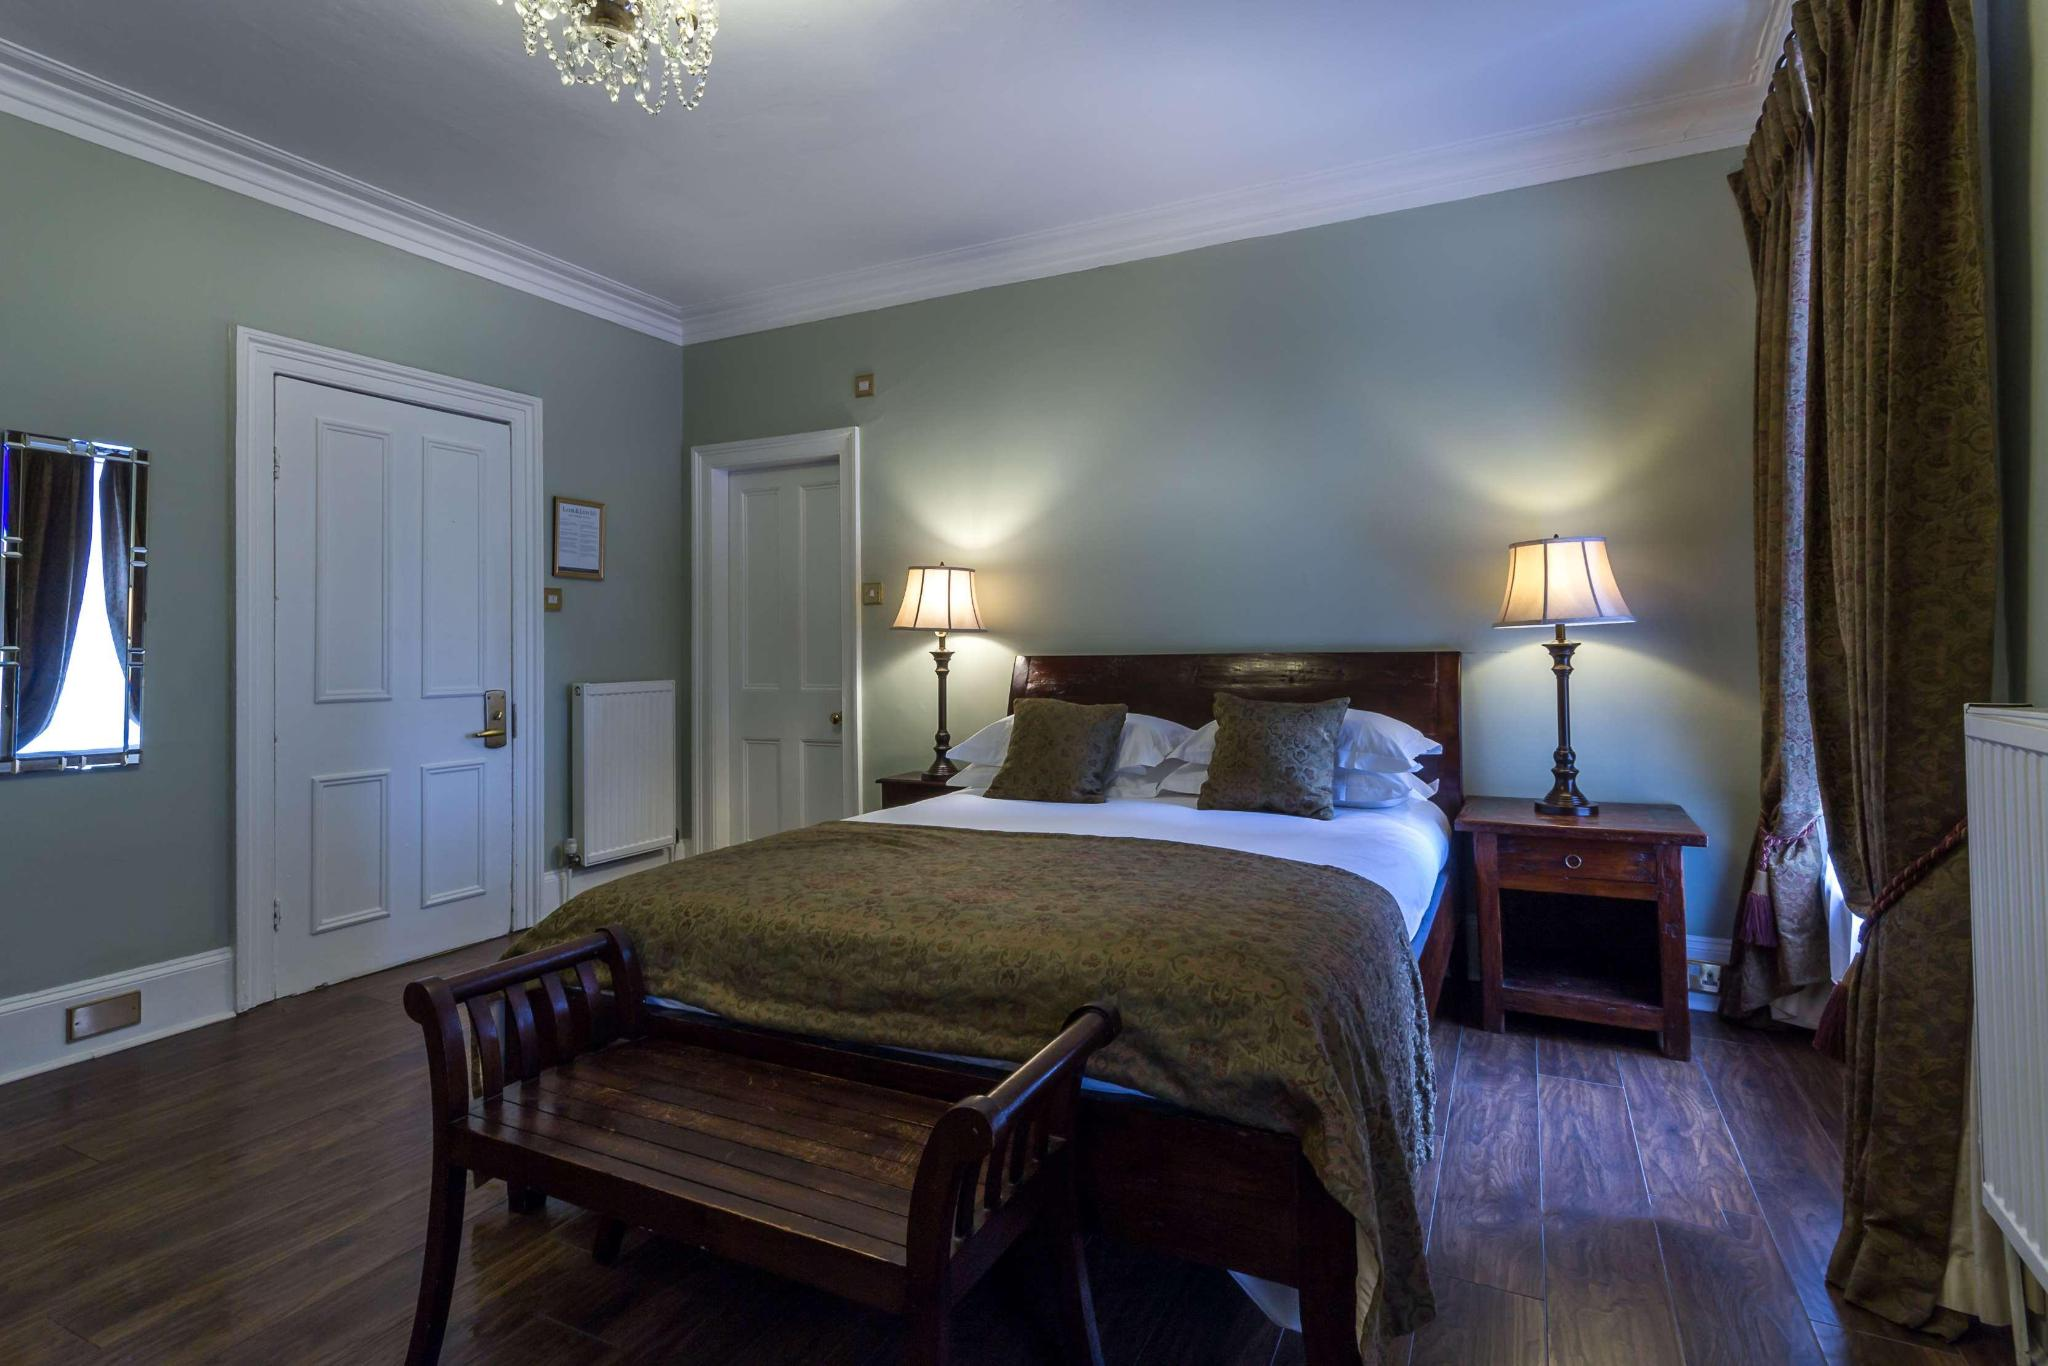 DOUBLE 1 Double Bed, Non-Smoking, Superior Room